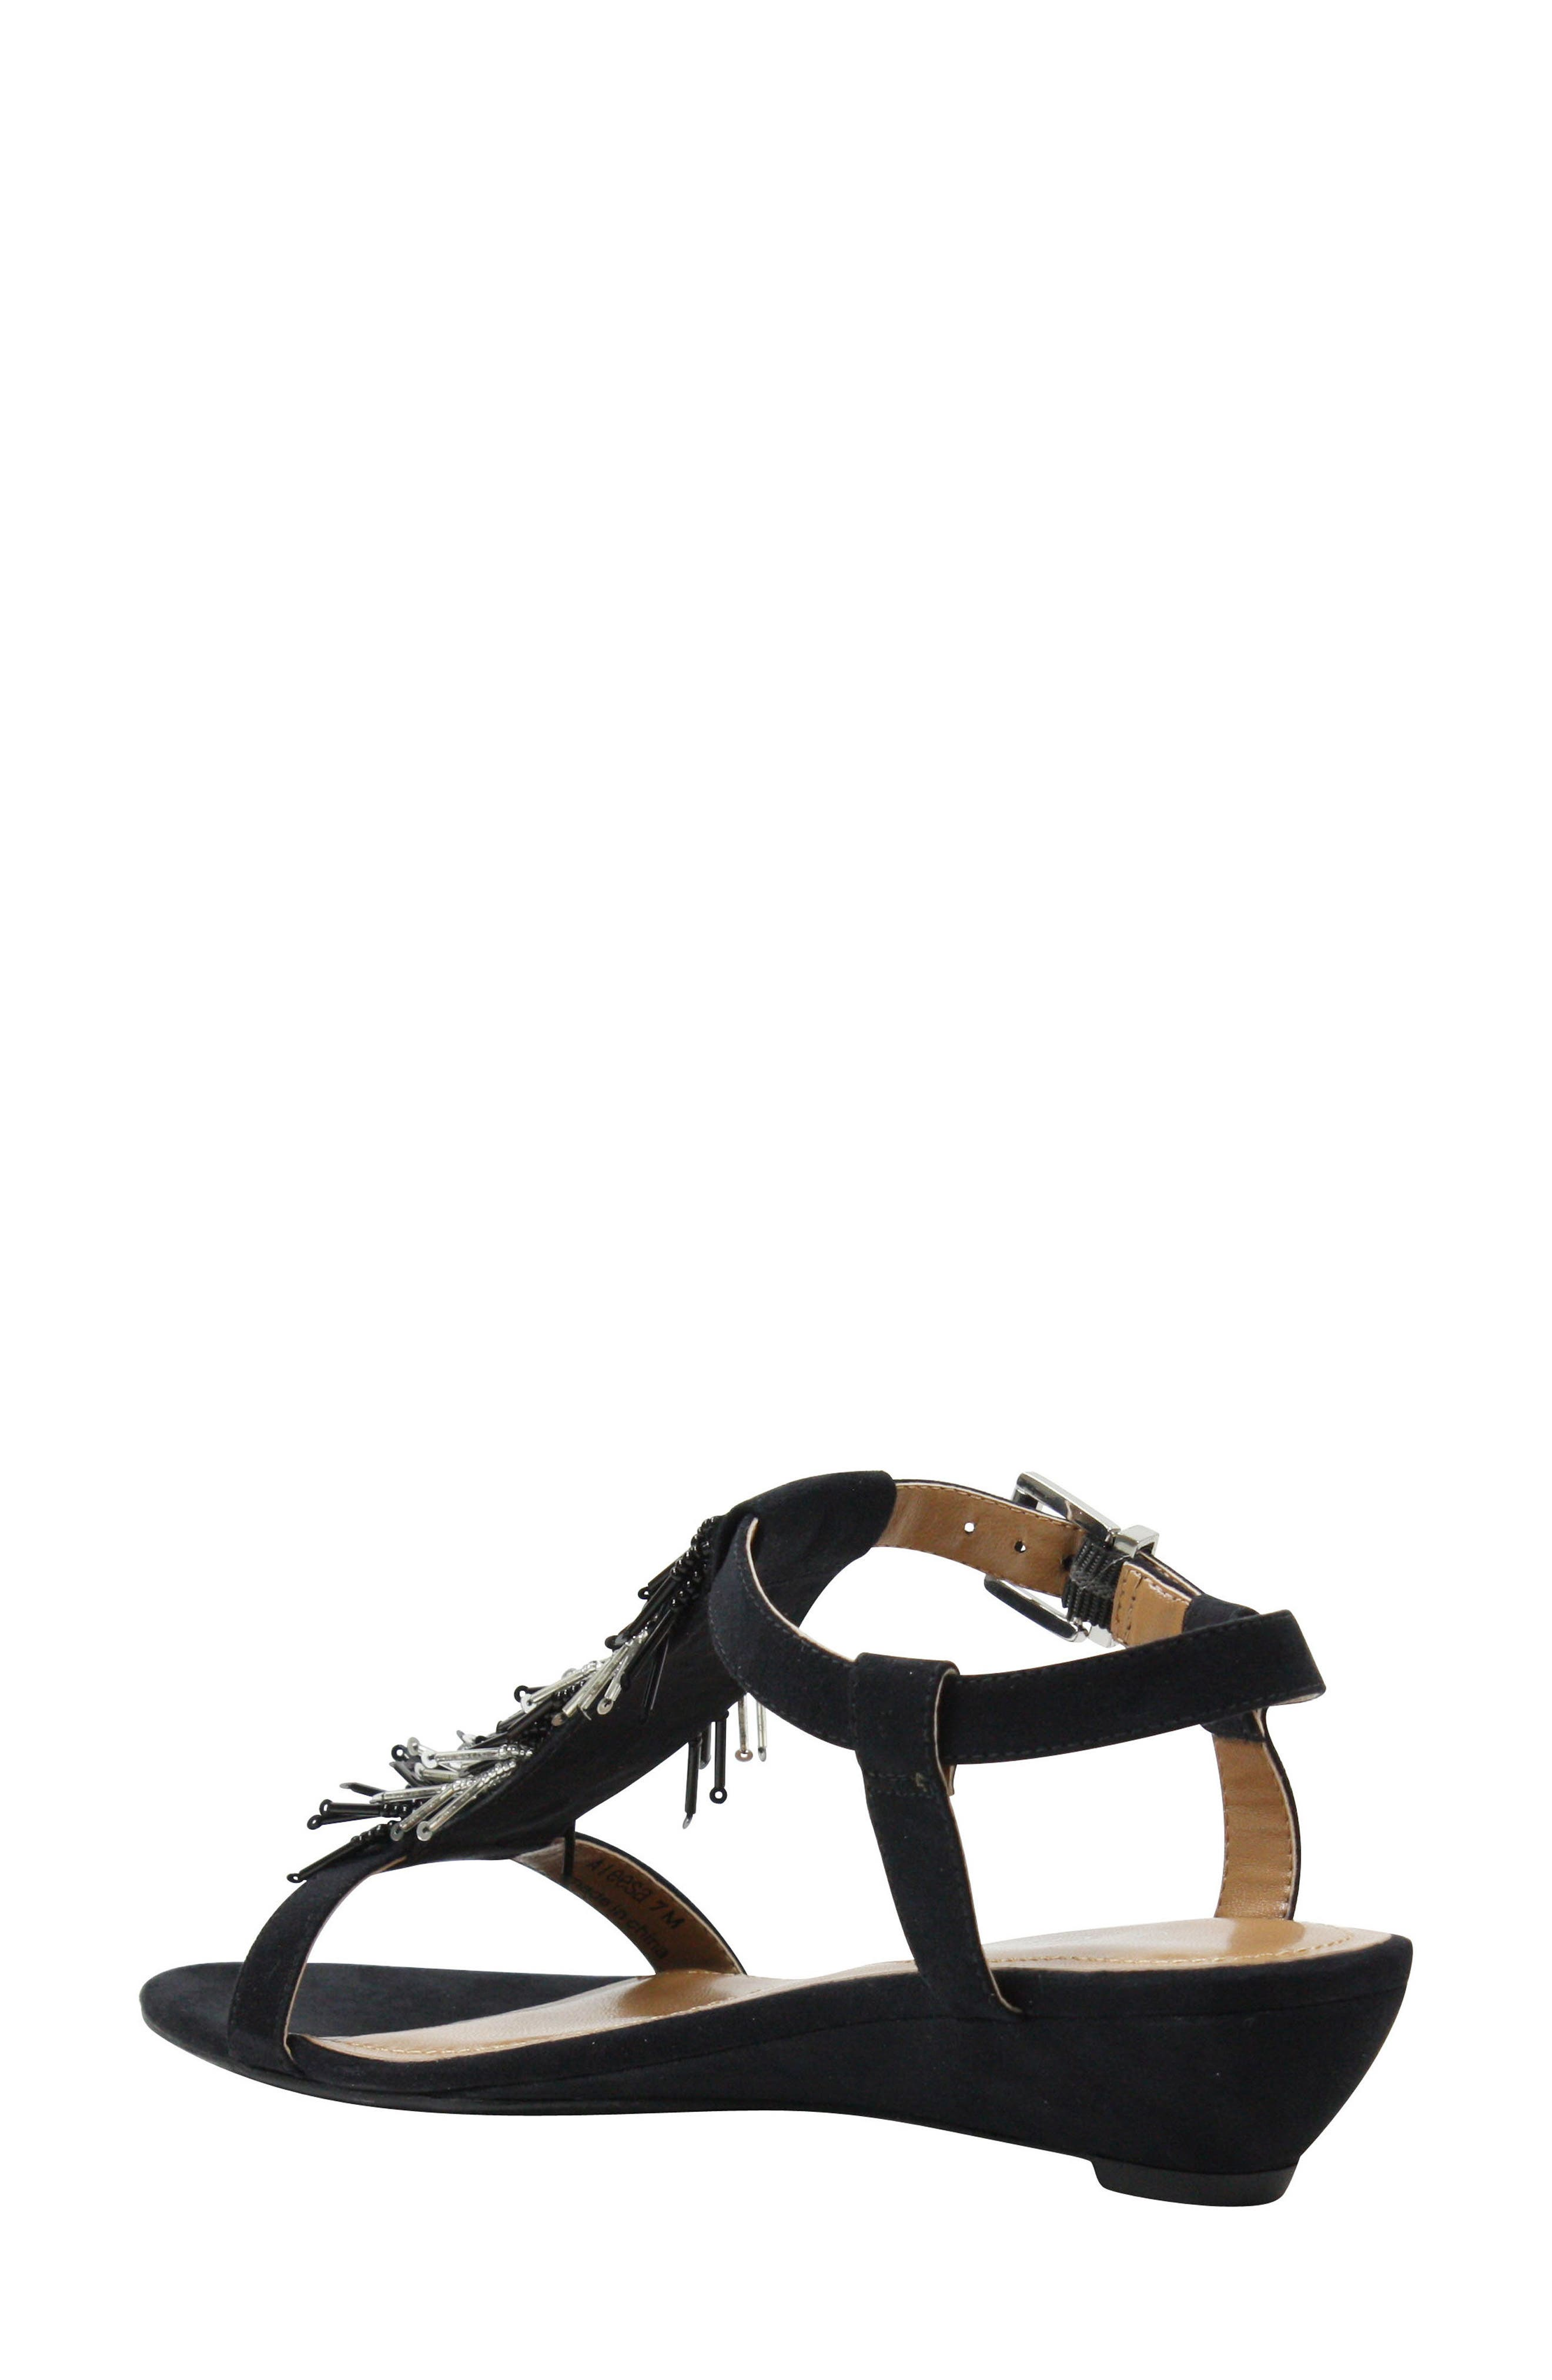 Alessa Sandal,                             Alternate thumbnail 2, color,                             BLACK/ SILVER FABRIC